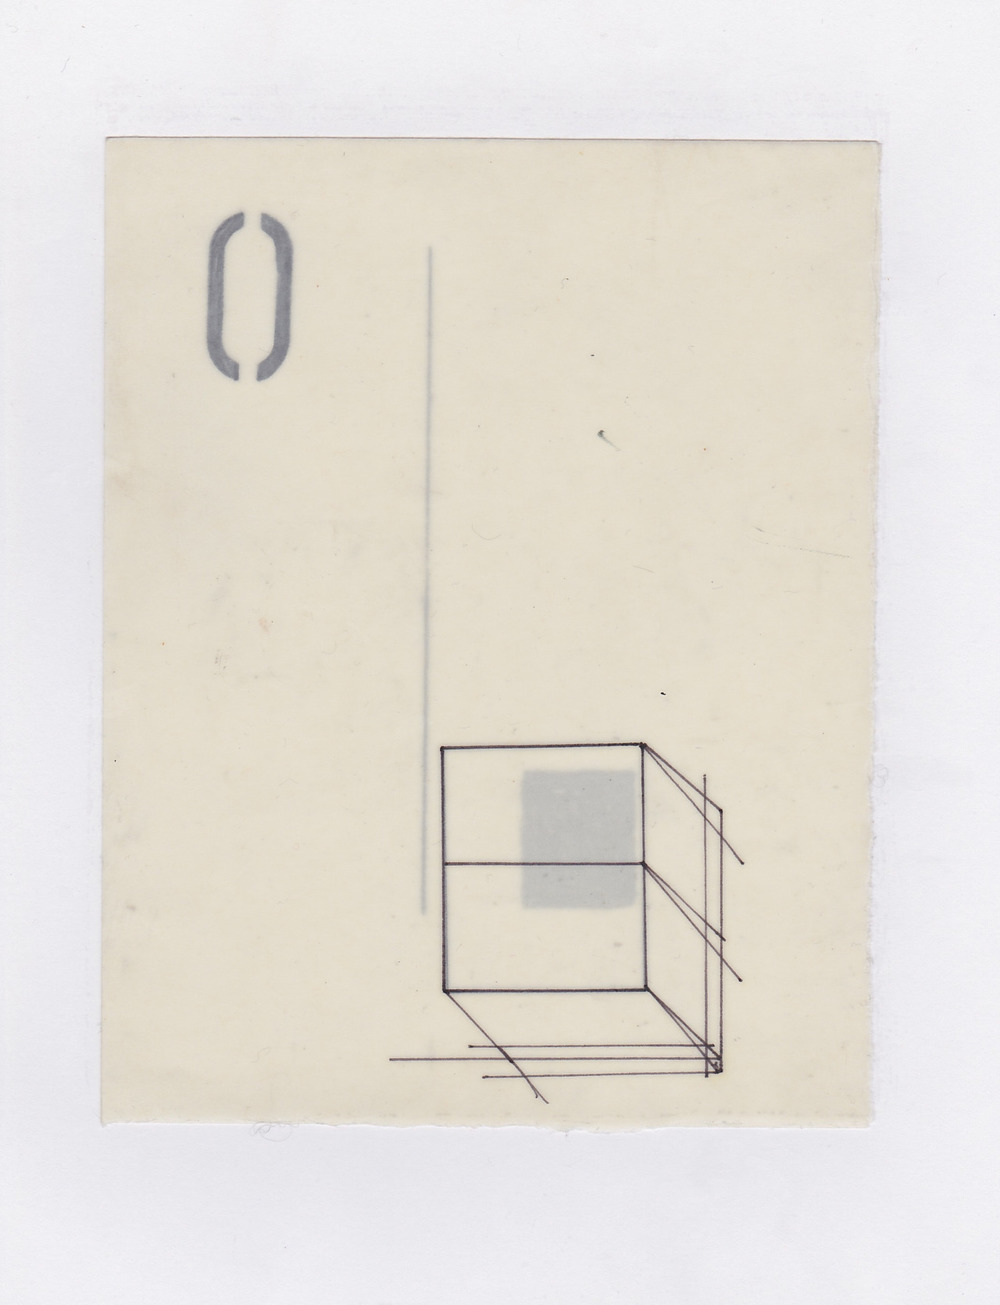 Untitled (the city, observations 12)  Pencil on layered(x2) oiled fabriano paper.  140mm x 180mm  December 2013.